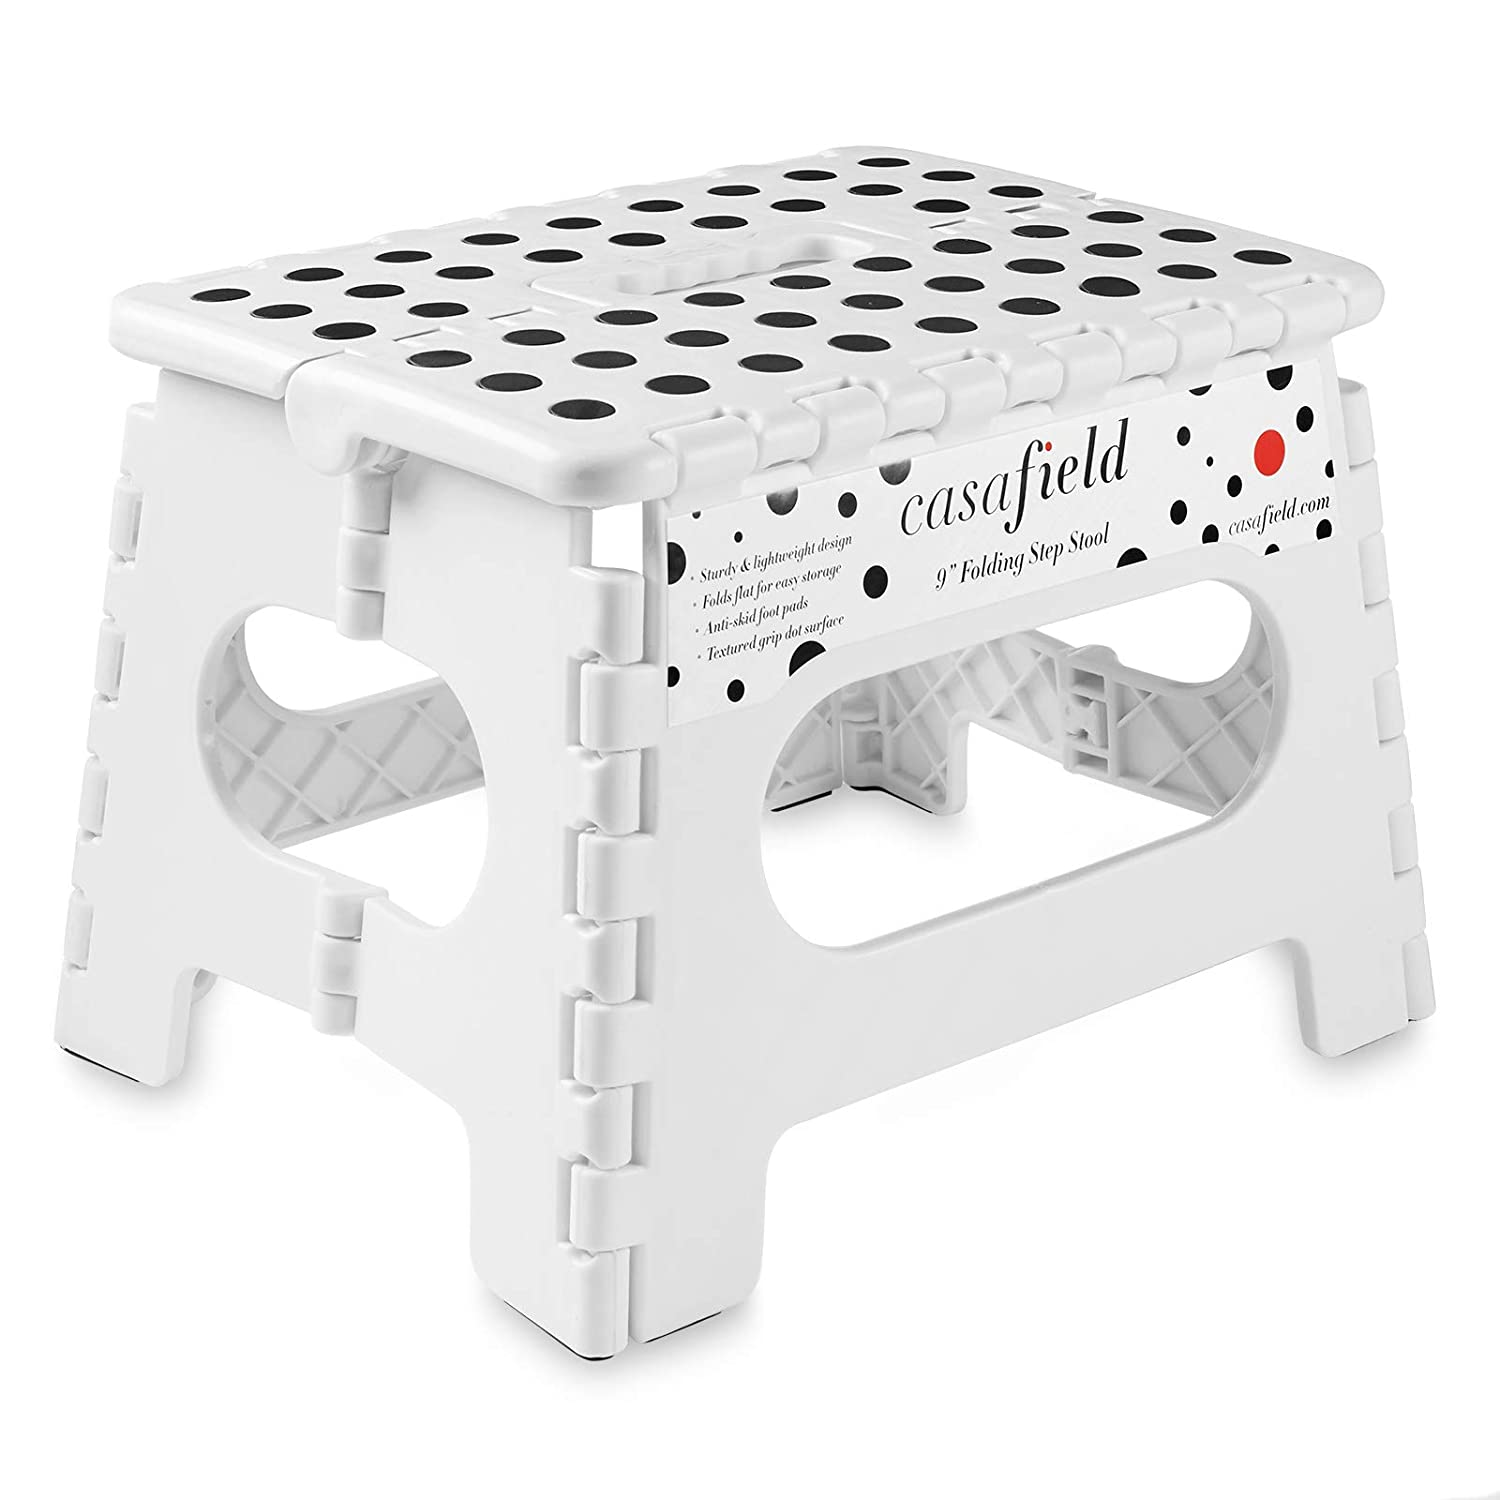 Swell Casafield 9 Folding Step Stool With Handle White Portable Collapsible Small Plastic Foot Stool For Kids And Adults Use In The Kitchen Bathroom Ocoug Best Dining Table And Chair Ideas Images Ocougorg